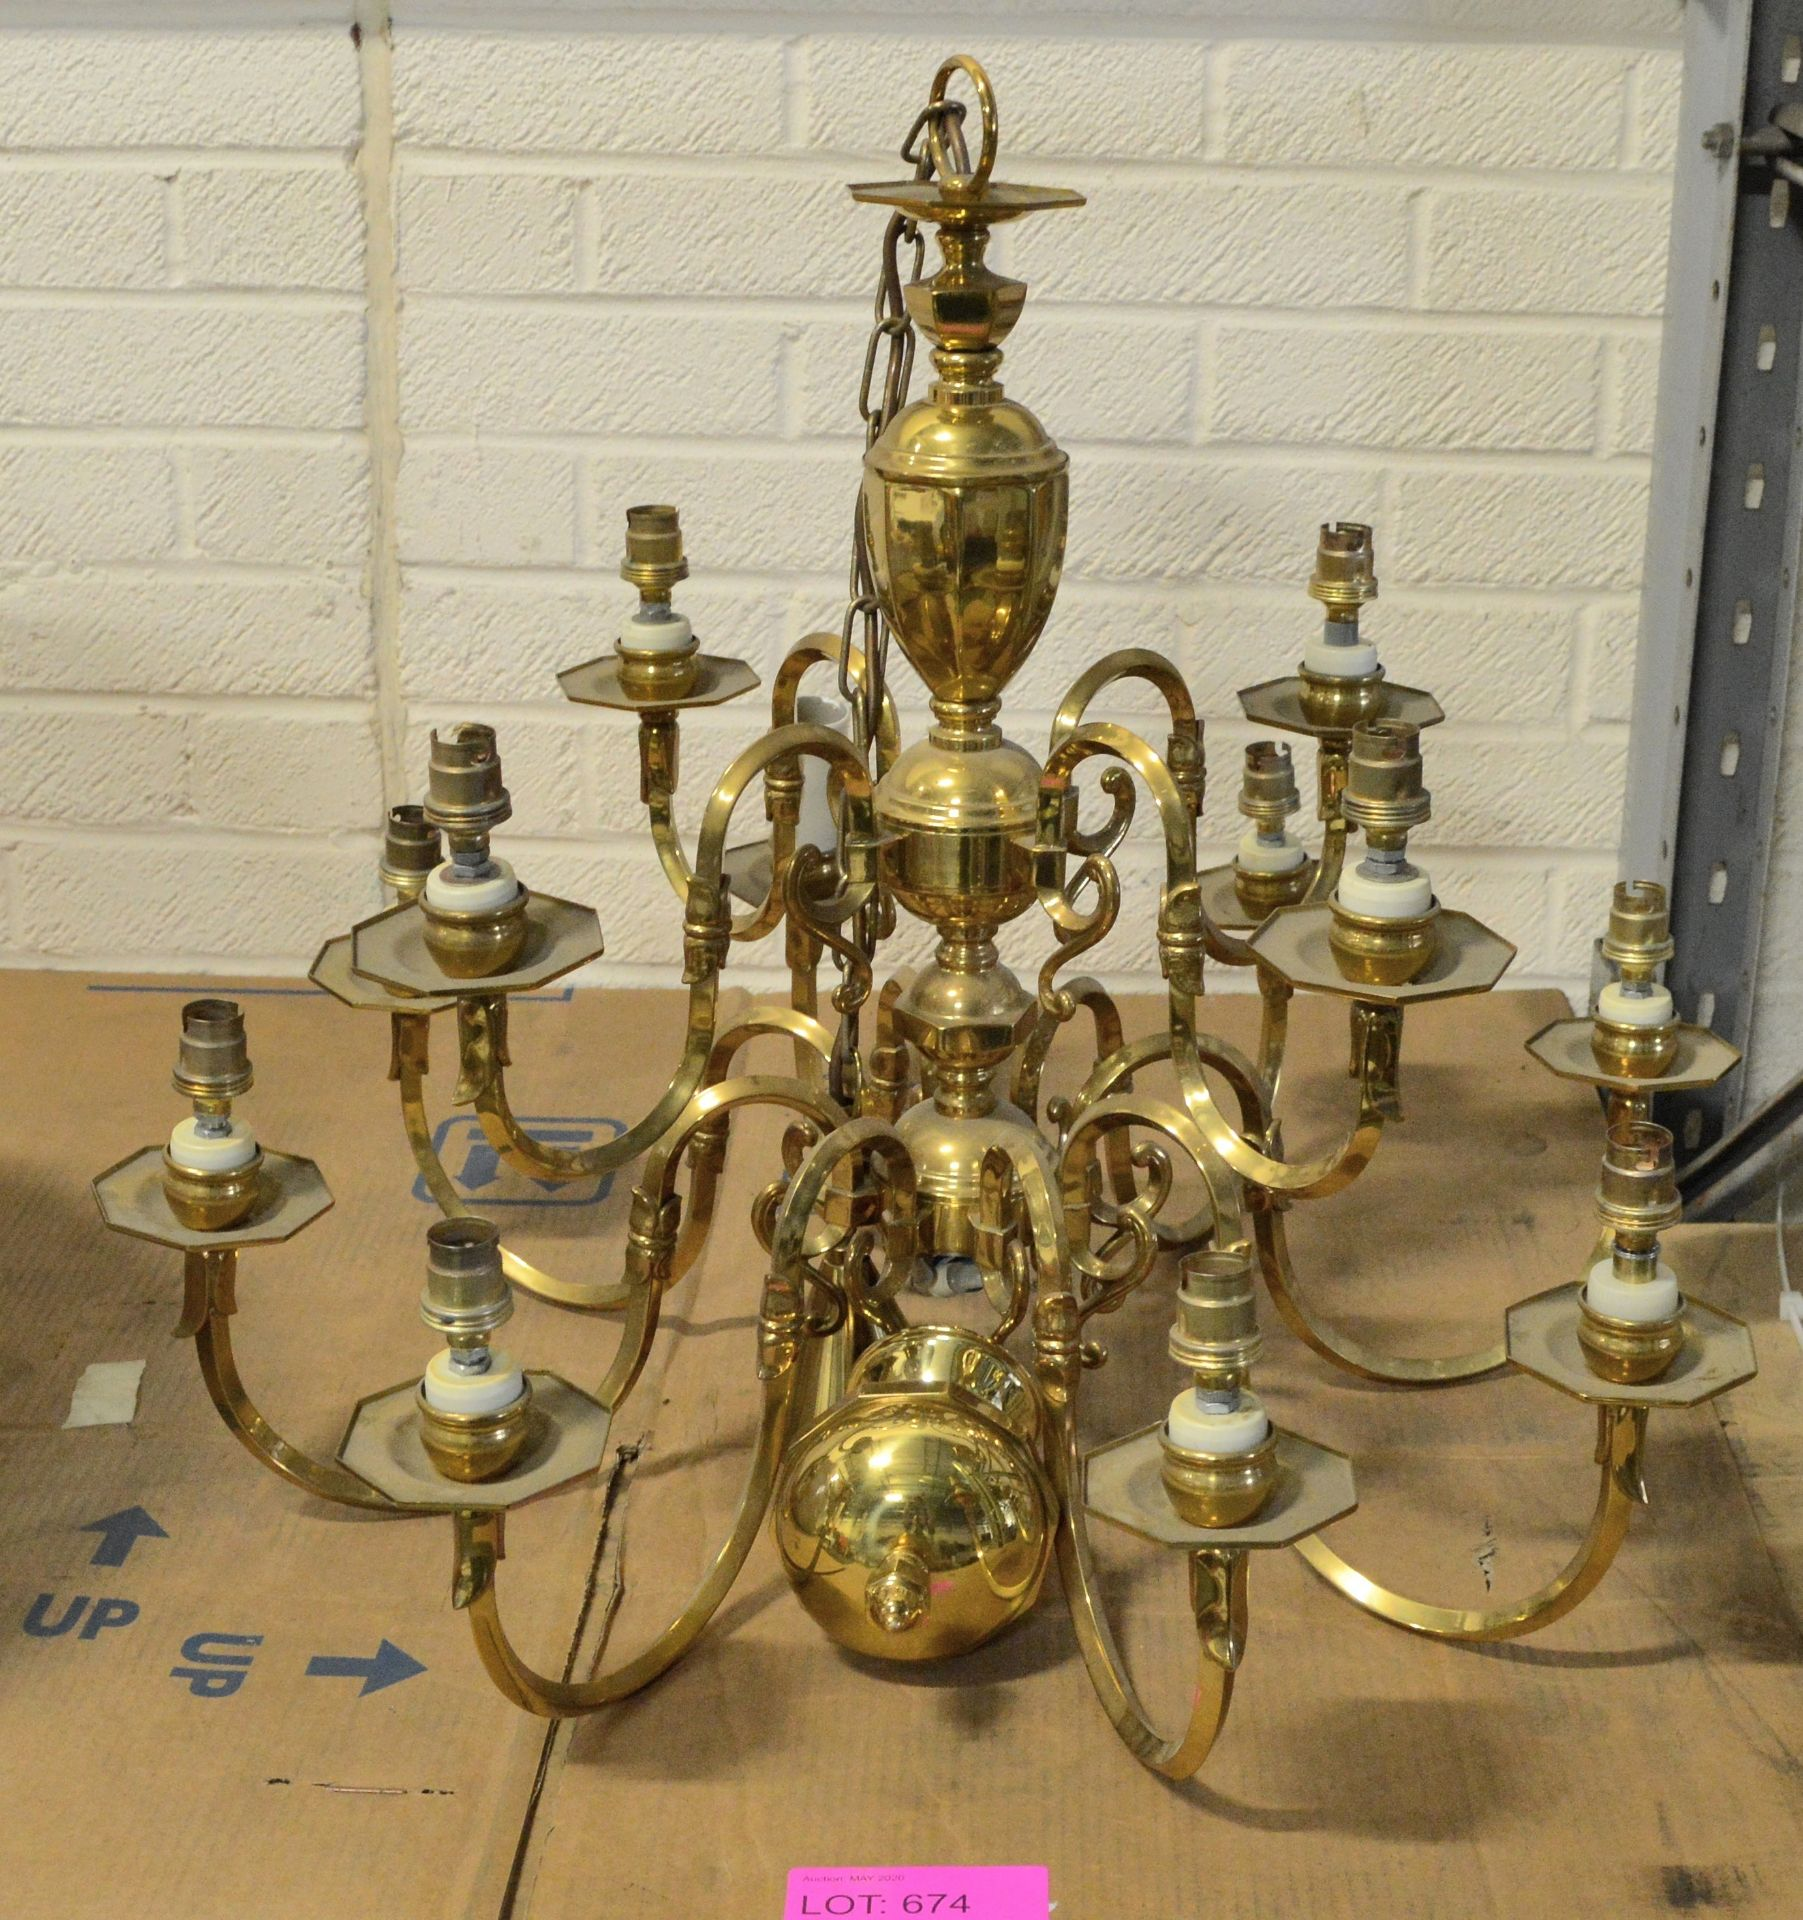 Lot 674 - 12 Lamp Chandelier from Chatham House